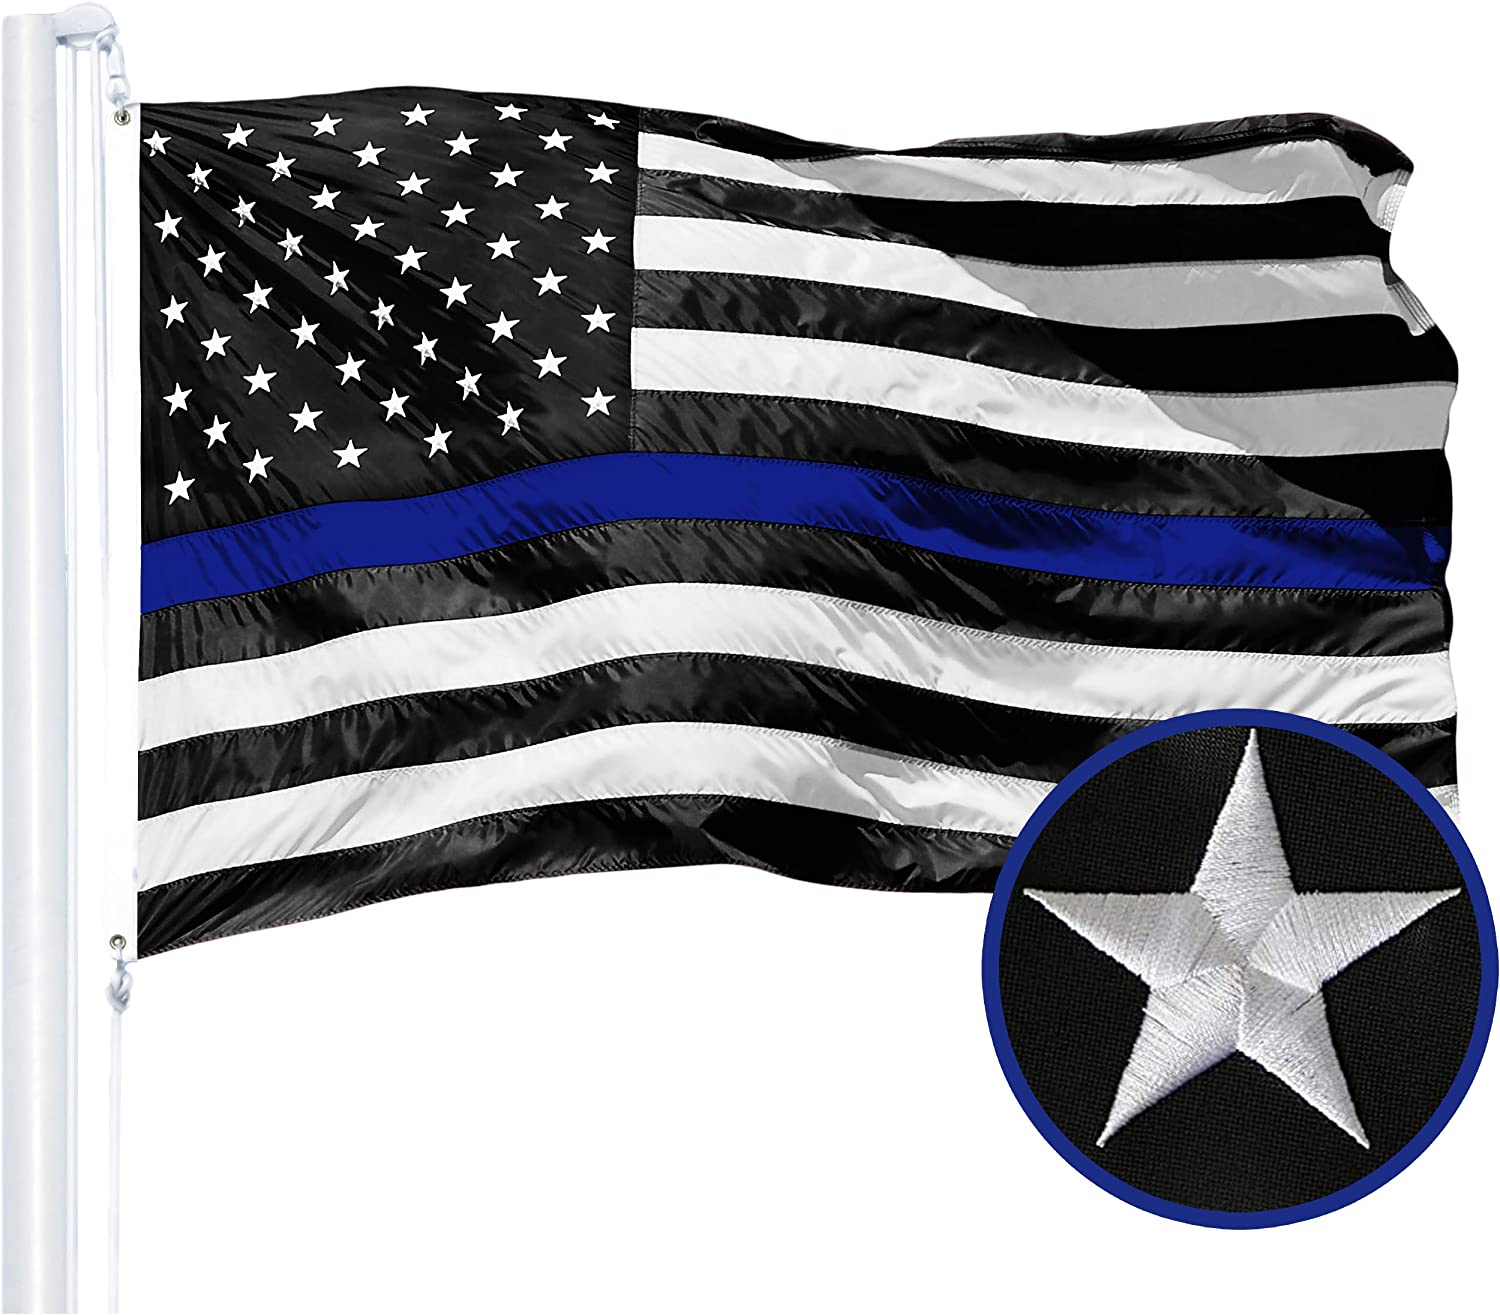 Large special price supreme G128 - Thin Blue Line Embroidered U.S. Bras 3X5 American Flag FT